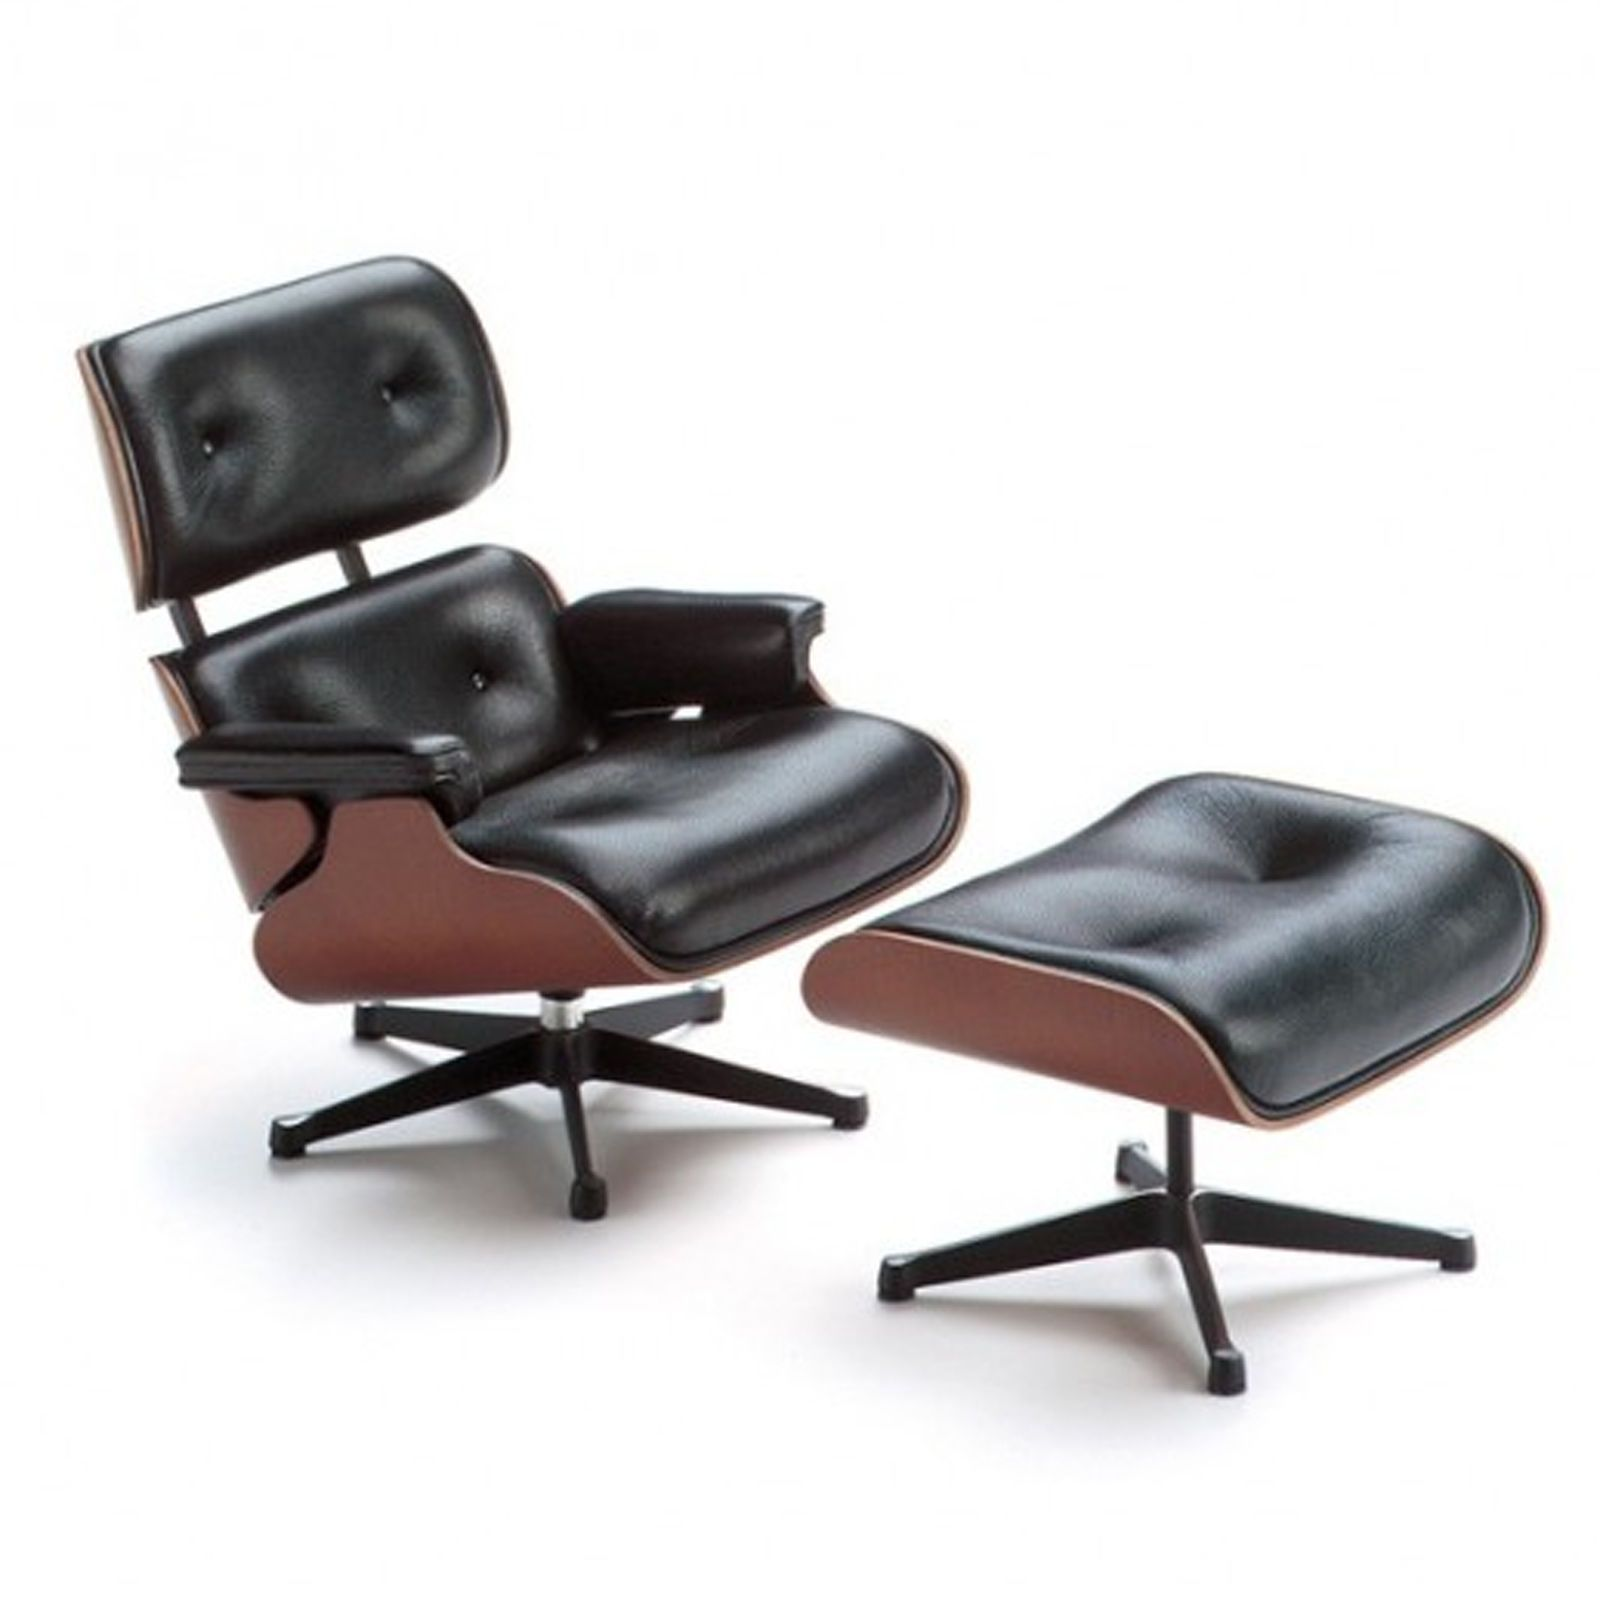 reac japan design interior collection 1 12 eames lounge ottoman